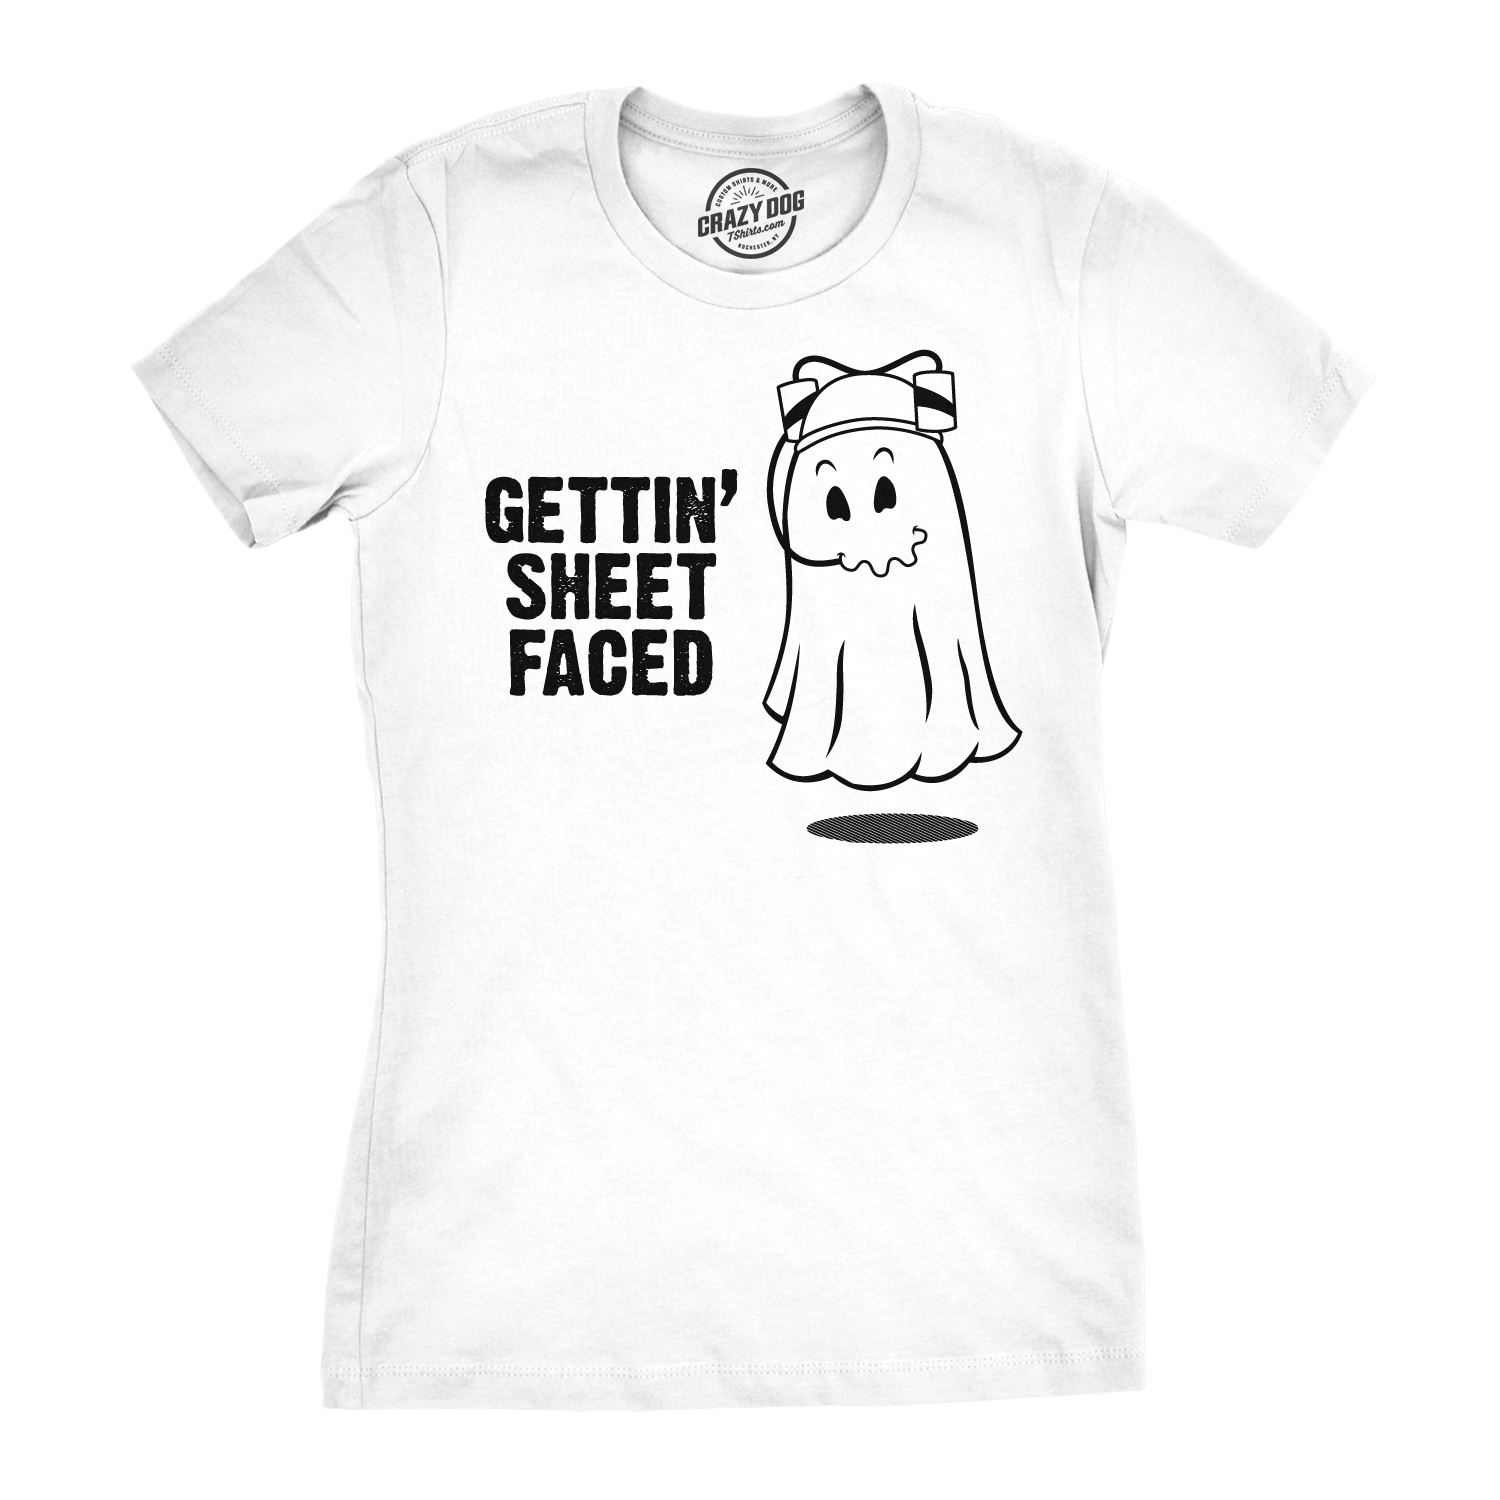 b94f3d6ad Women's Getting Sheet Faced T Shirt Funny Halloween Drinking Shirt Ghost Tee  (white) S